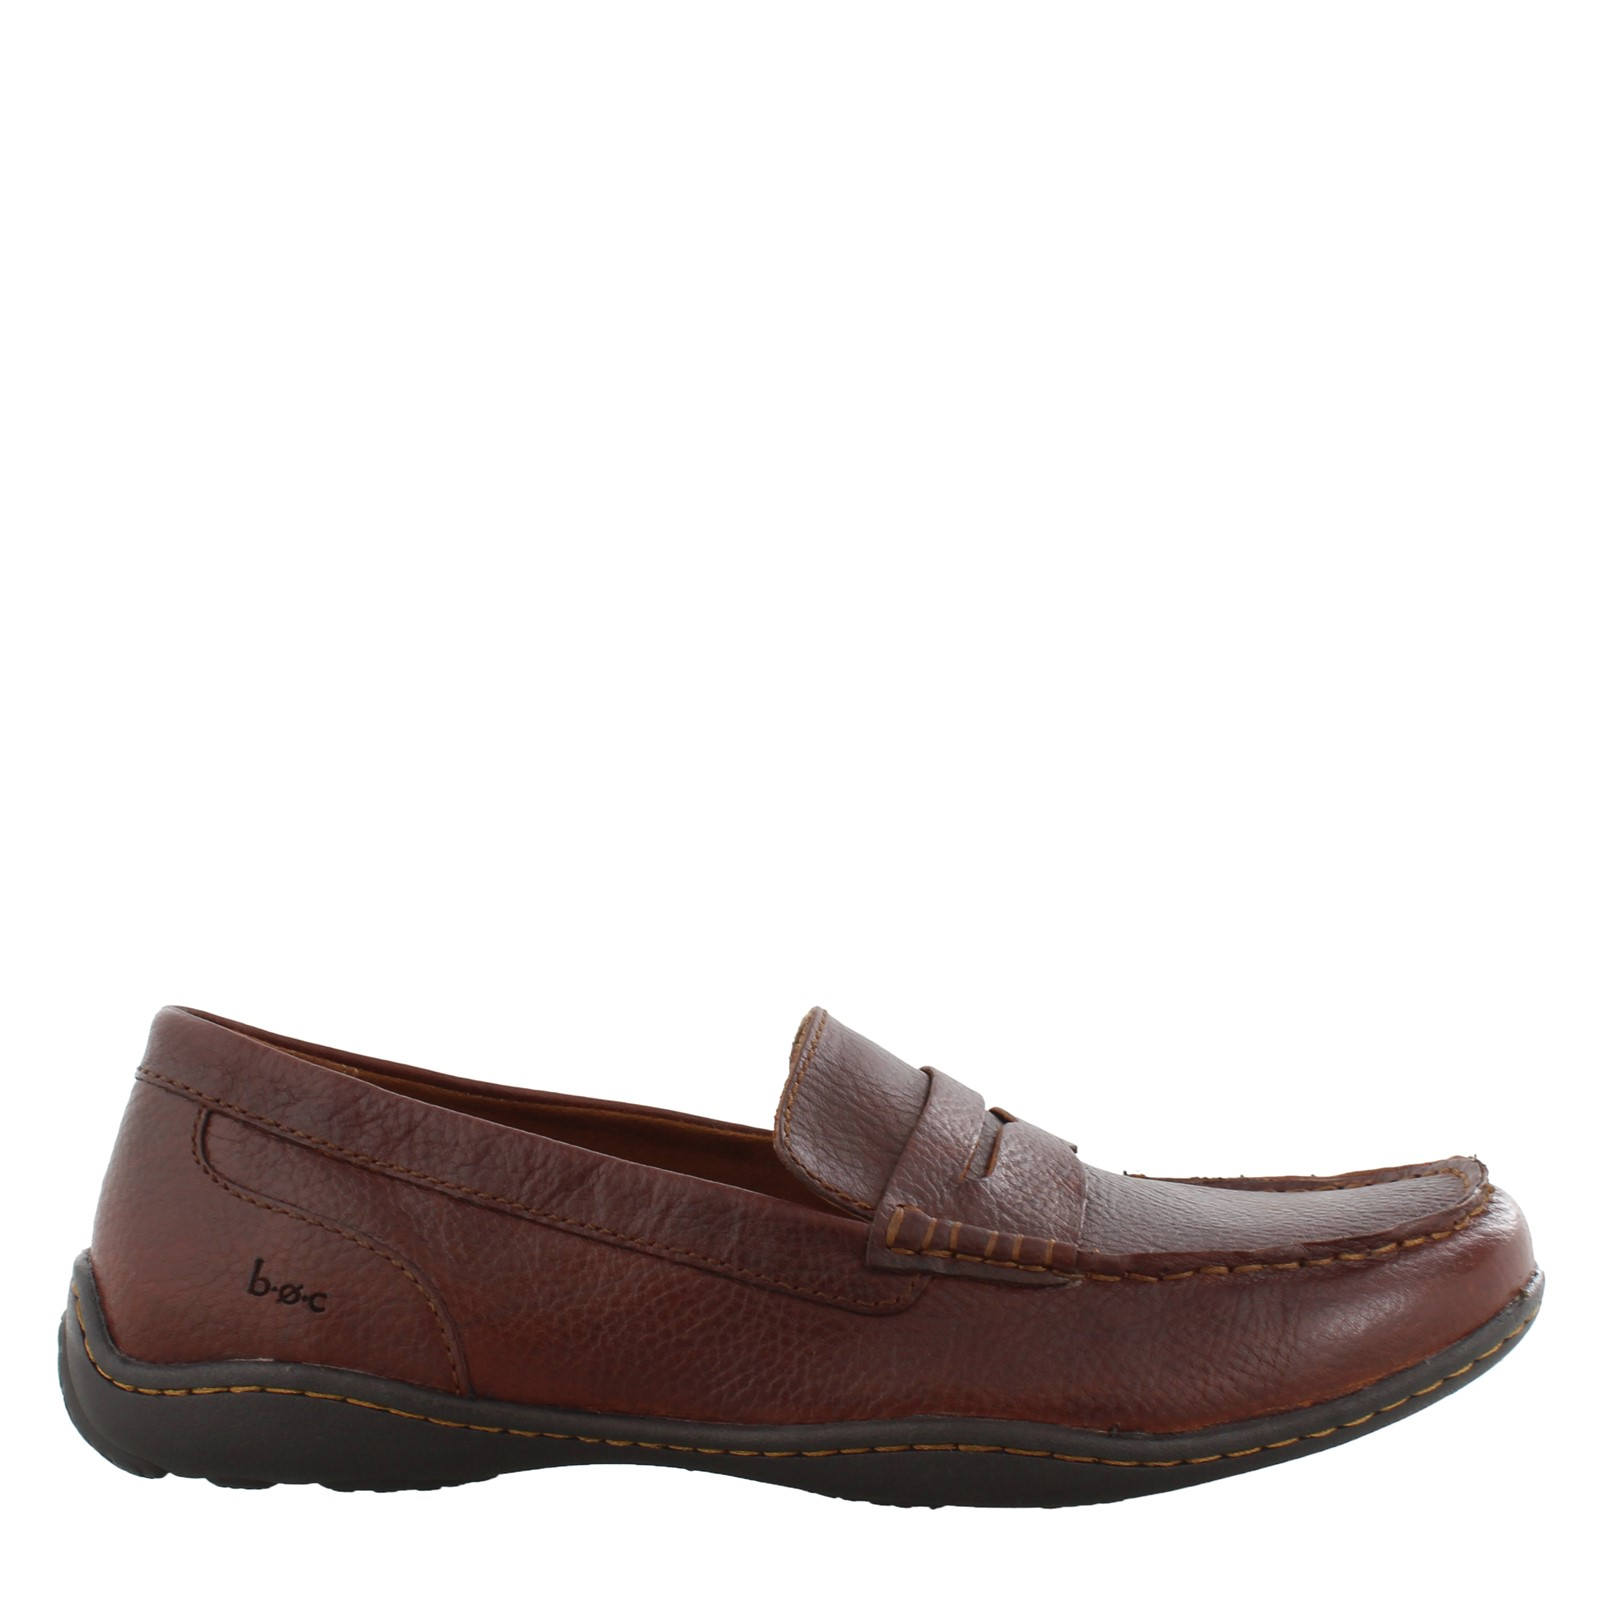 Men's Boc, Roth Slip On Loafers